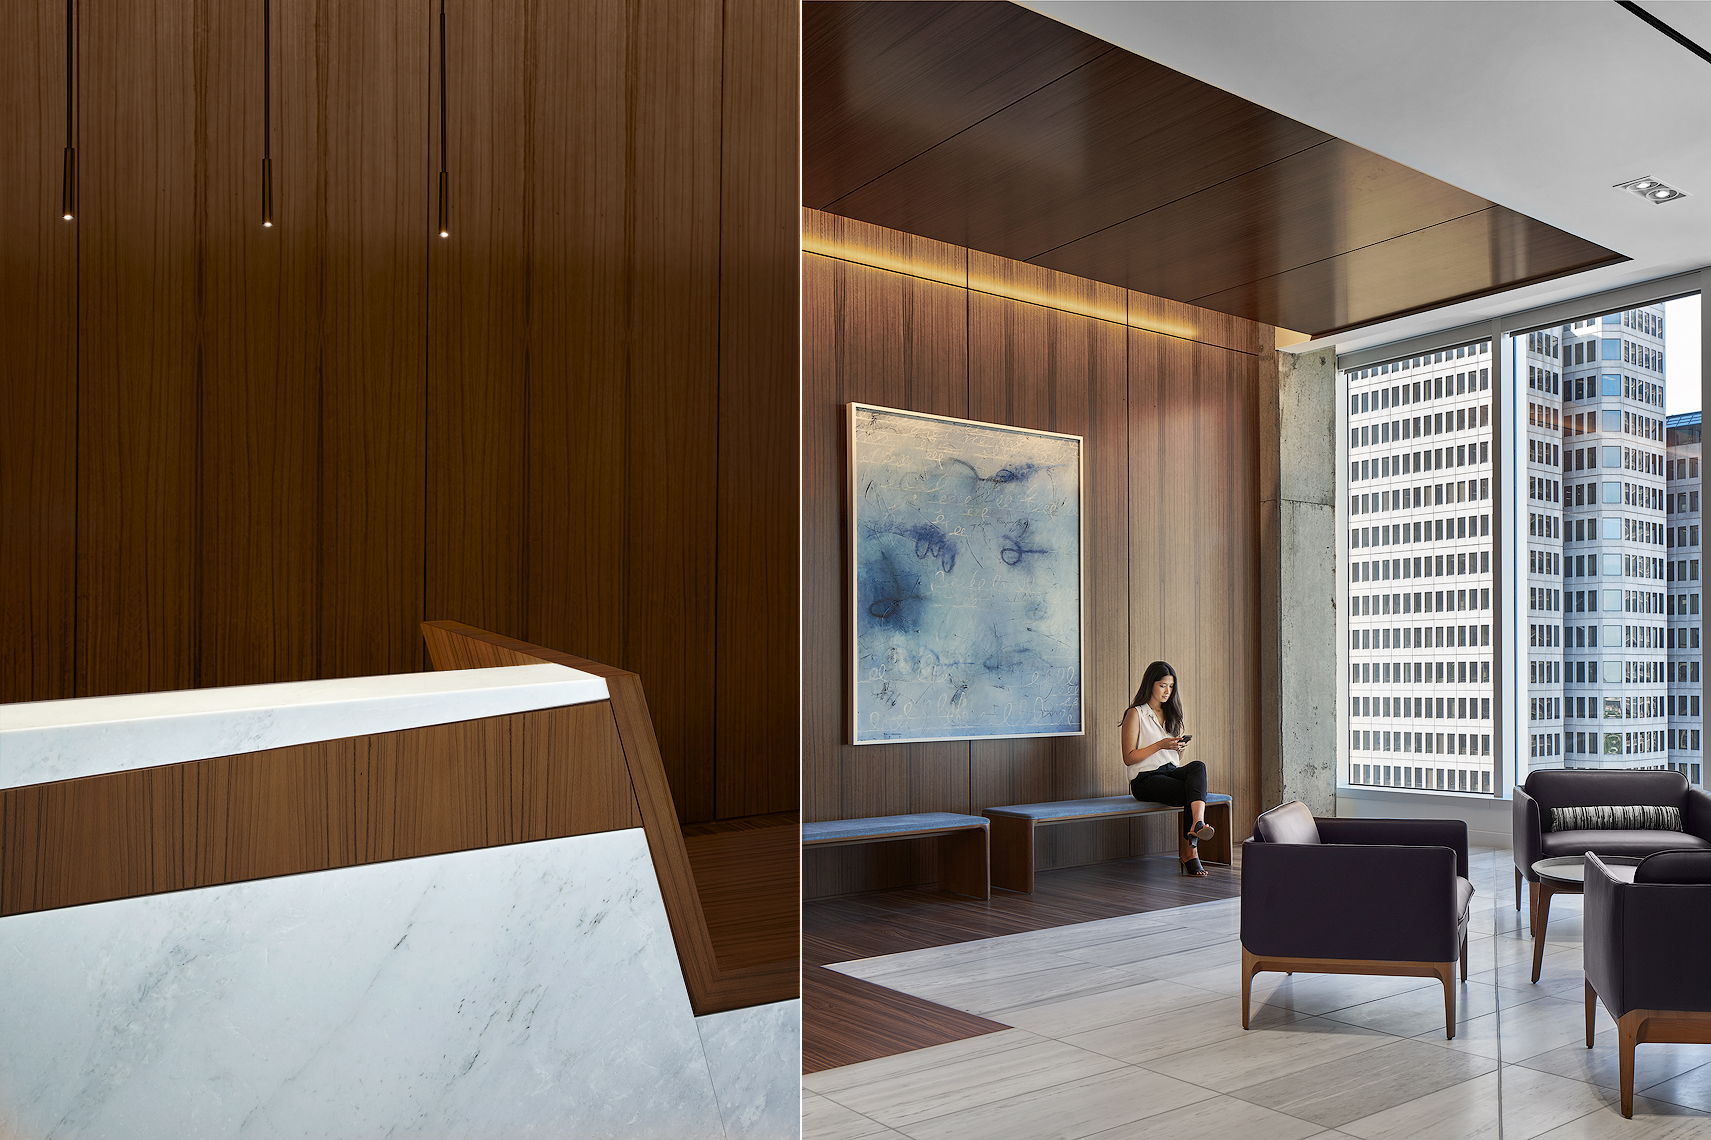 Dallas law firm interiors photography Gensler Dror Baldinger